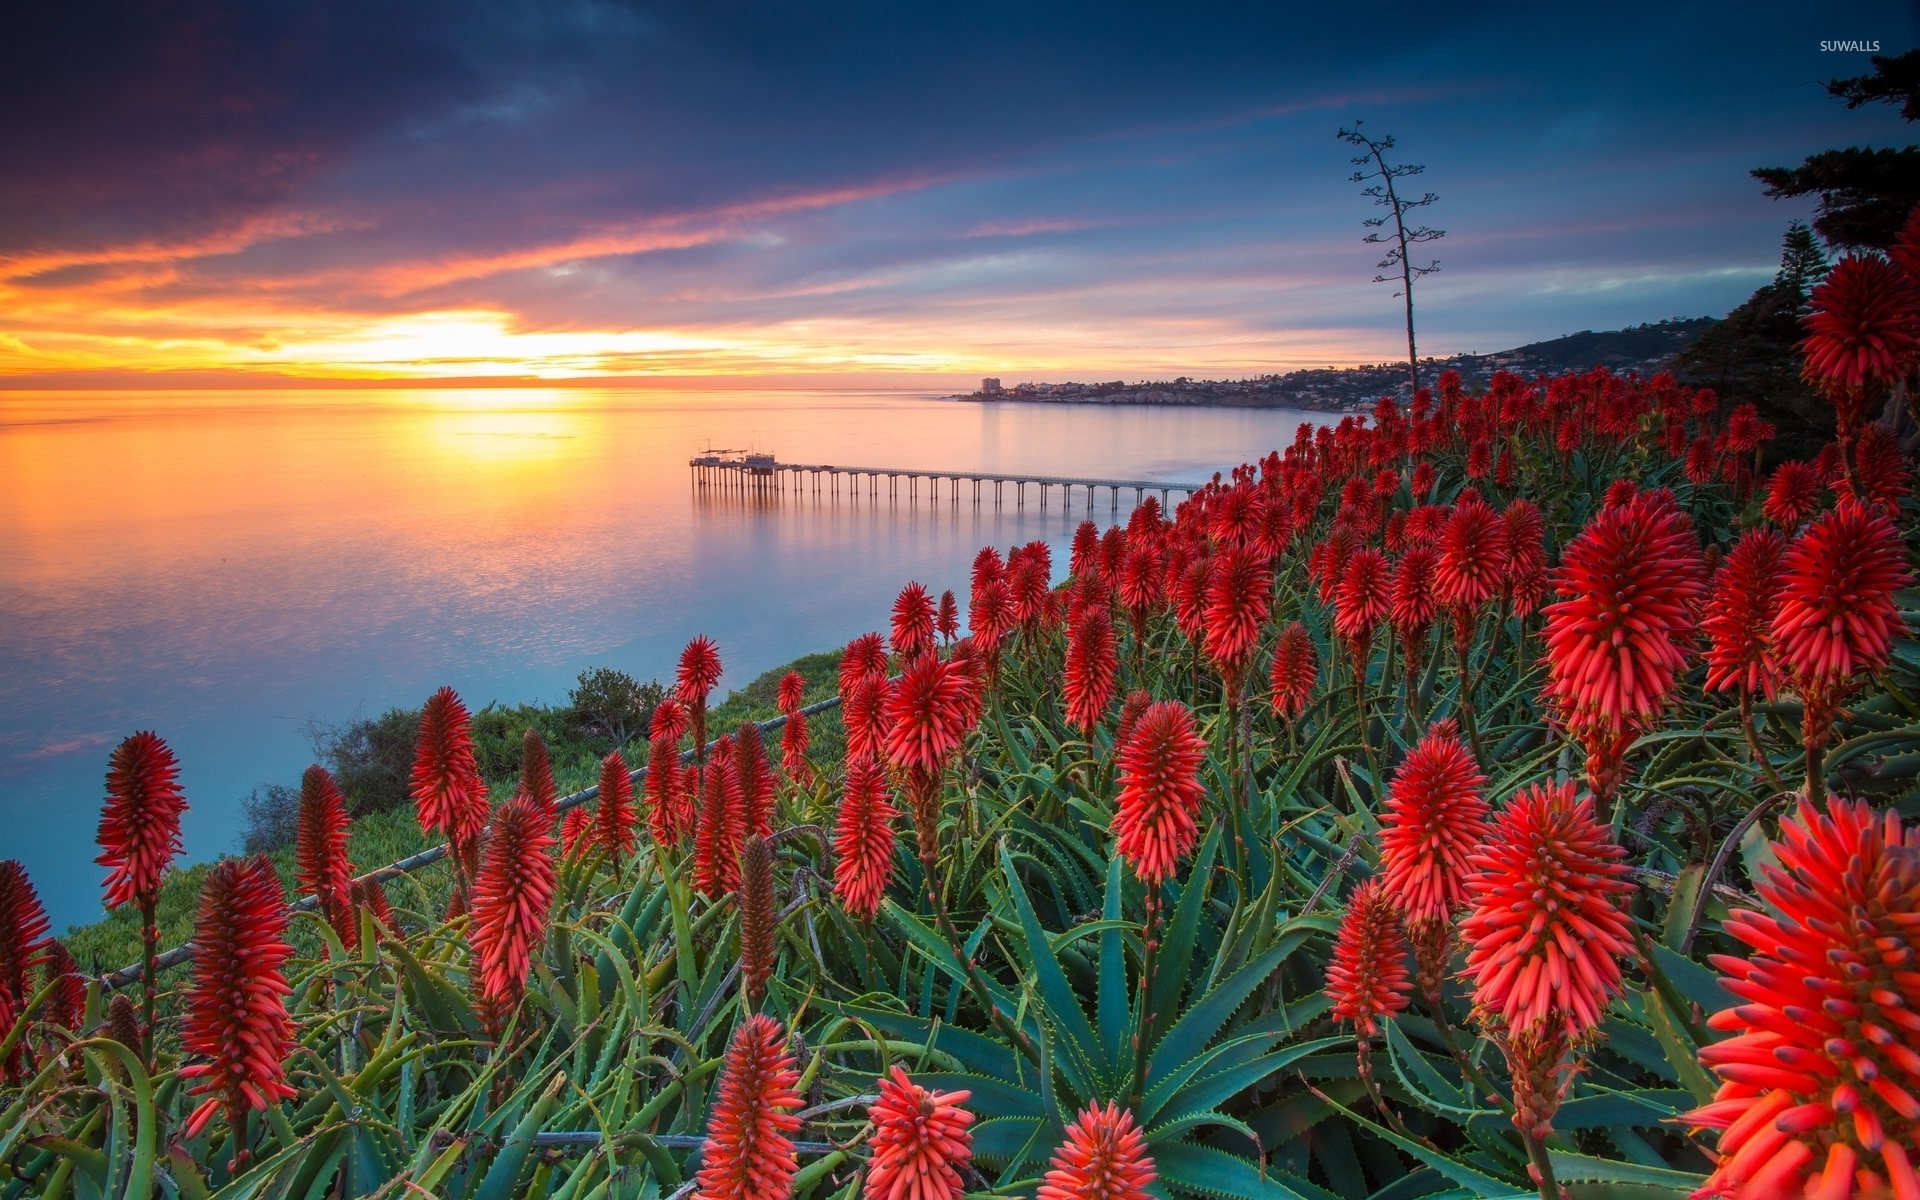 Sunset Over Exotic Flowers Wallpaper Nature Wallpapers